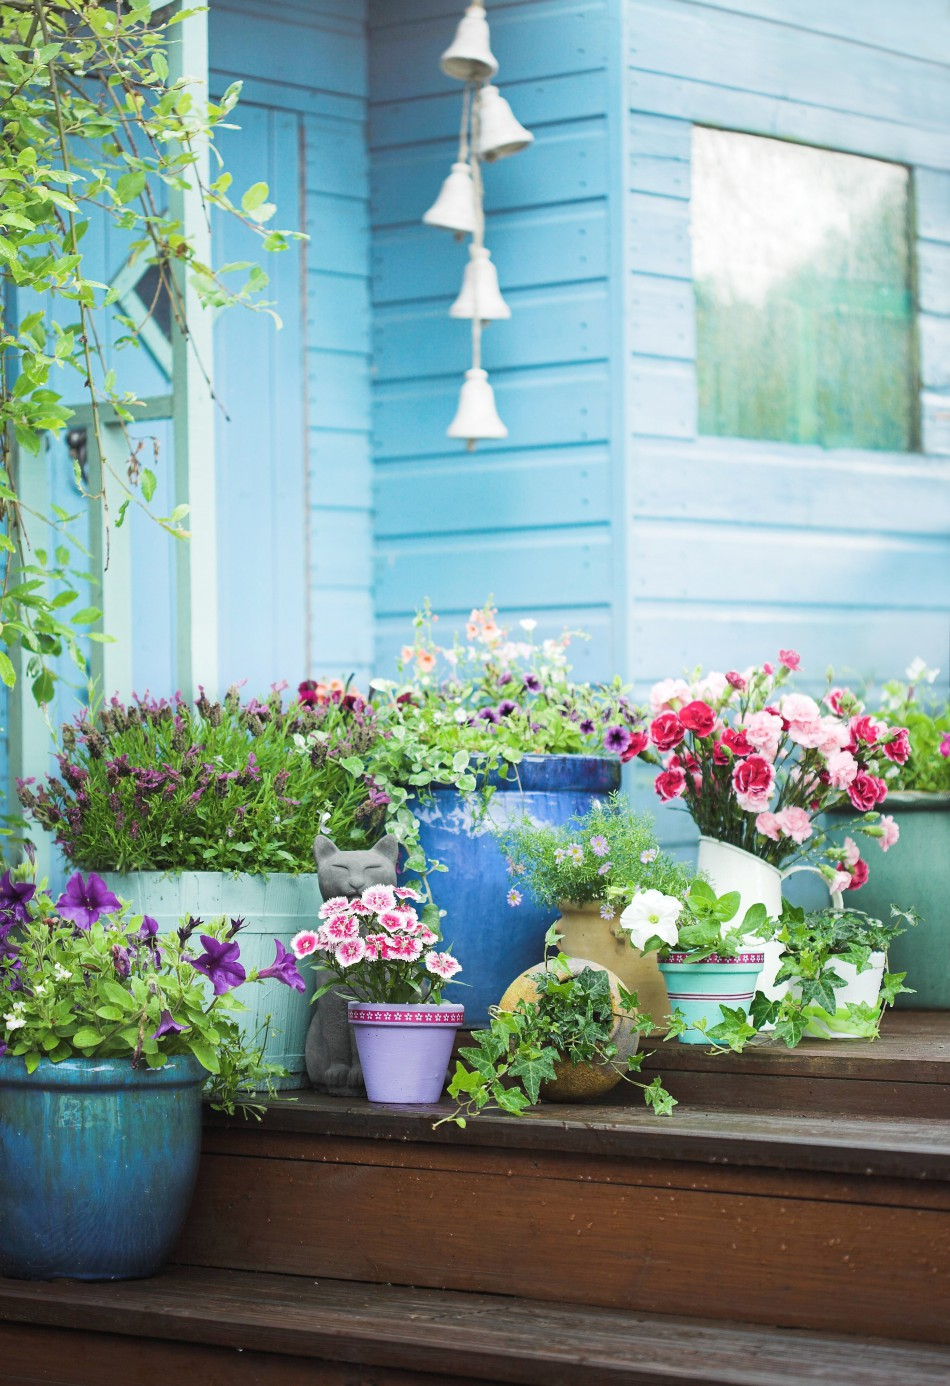 Small Space and Container Gardening: Tips, Tricks, and Best Varieties